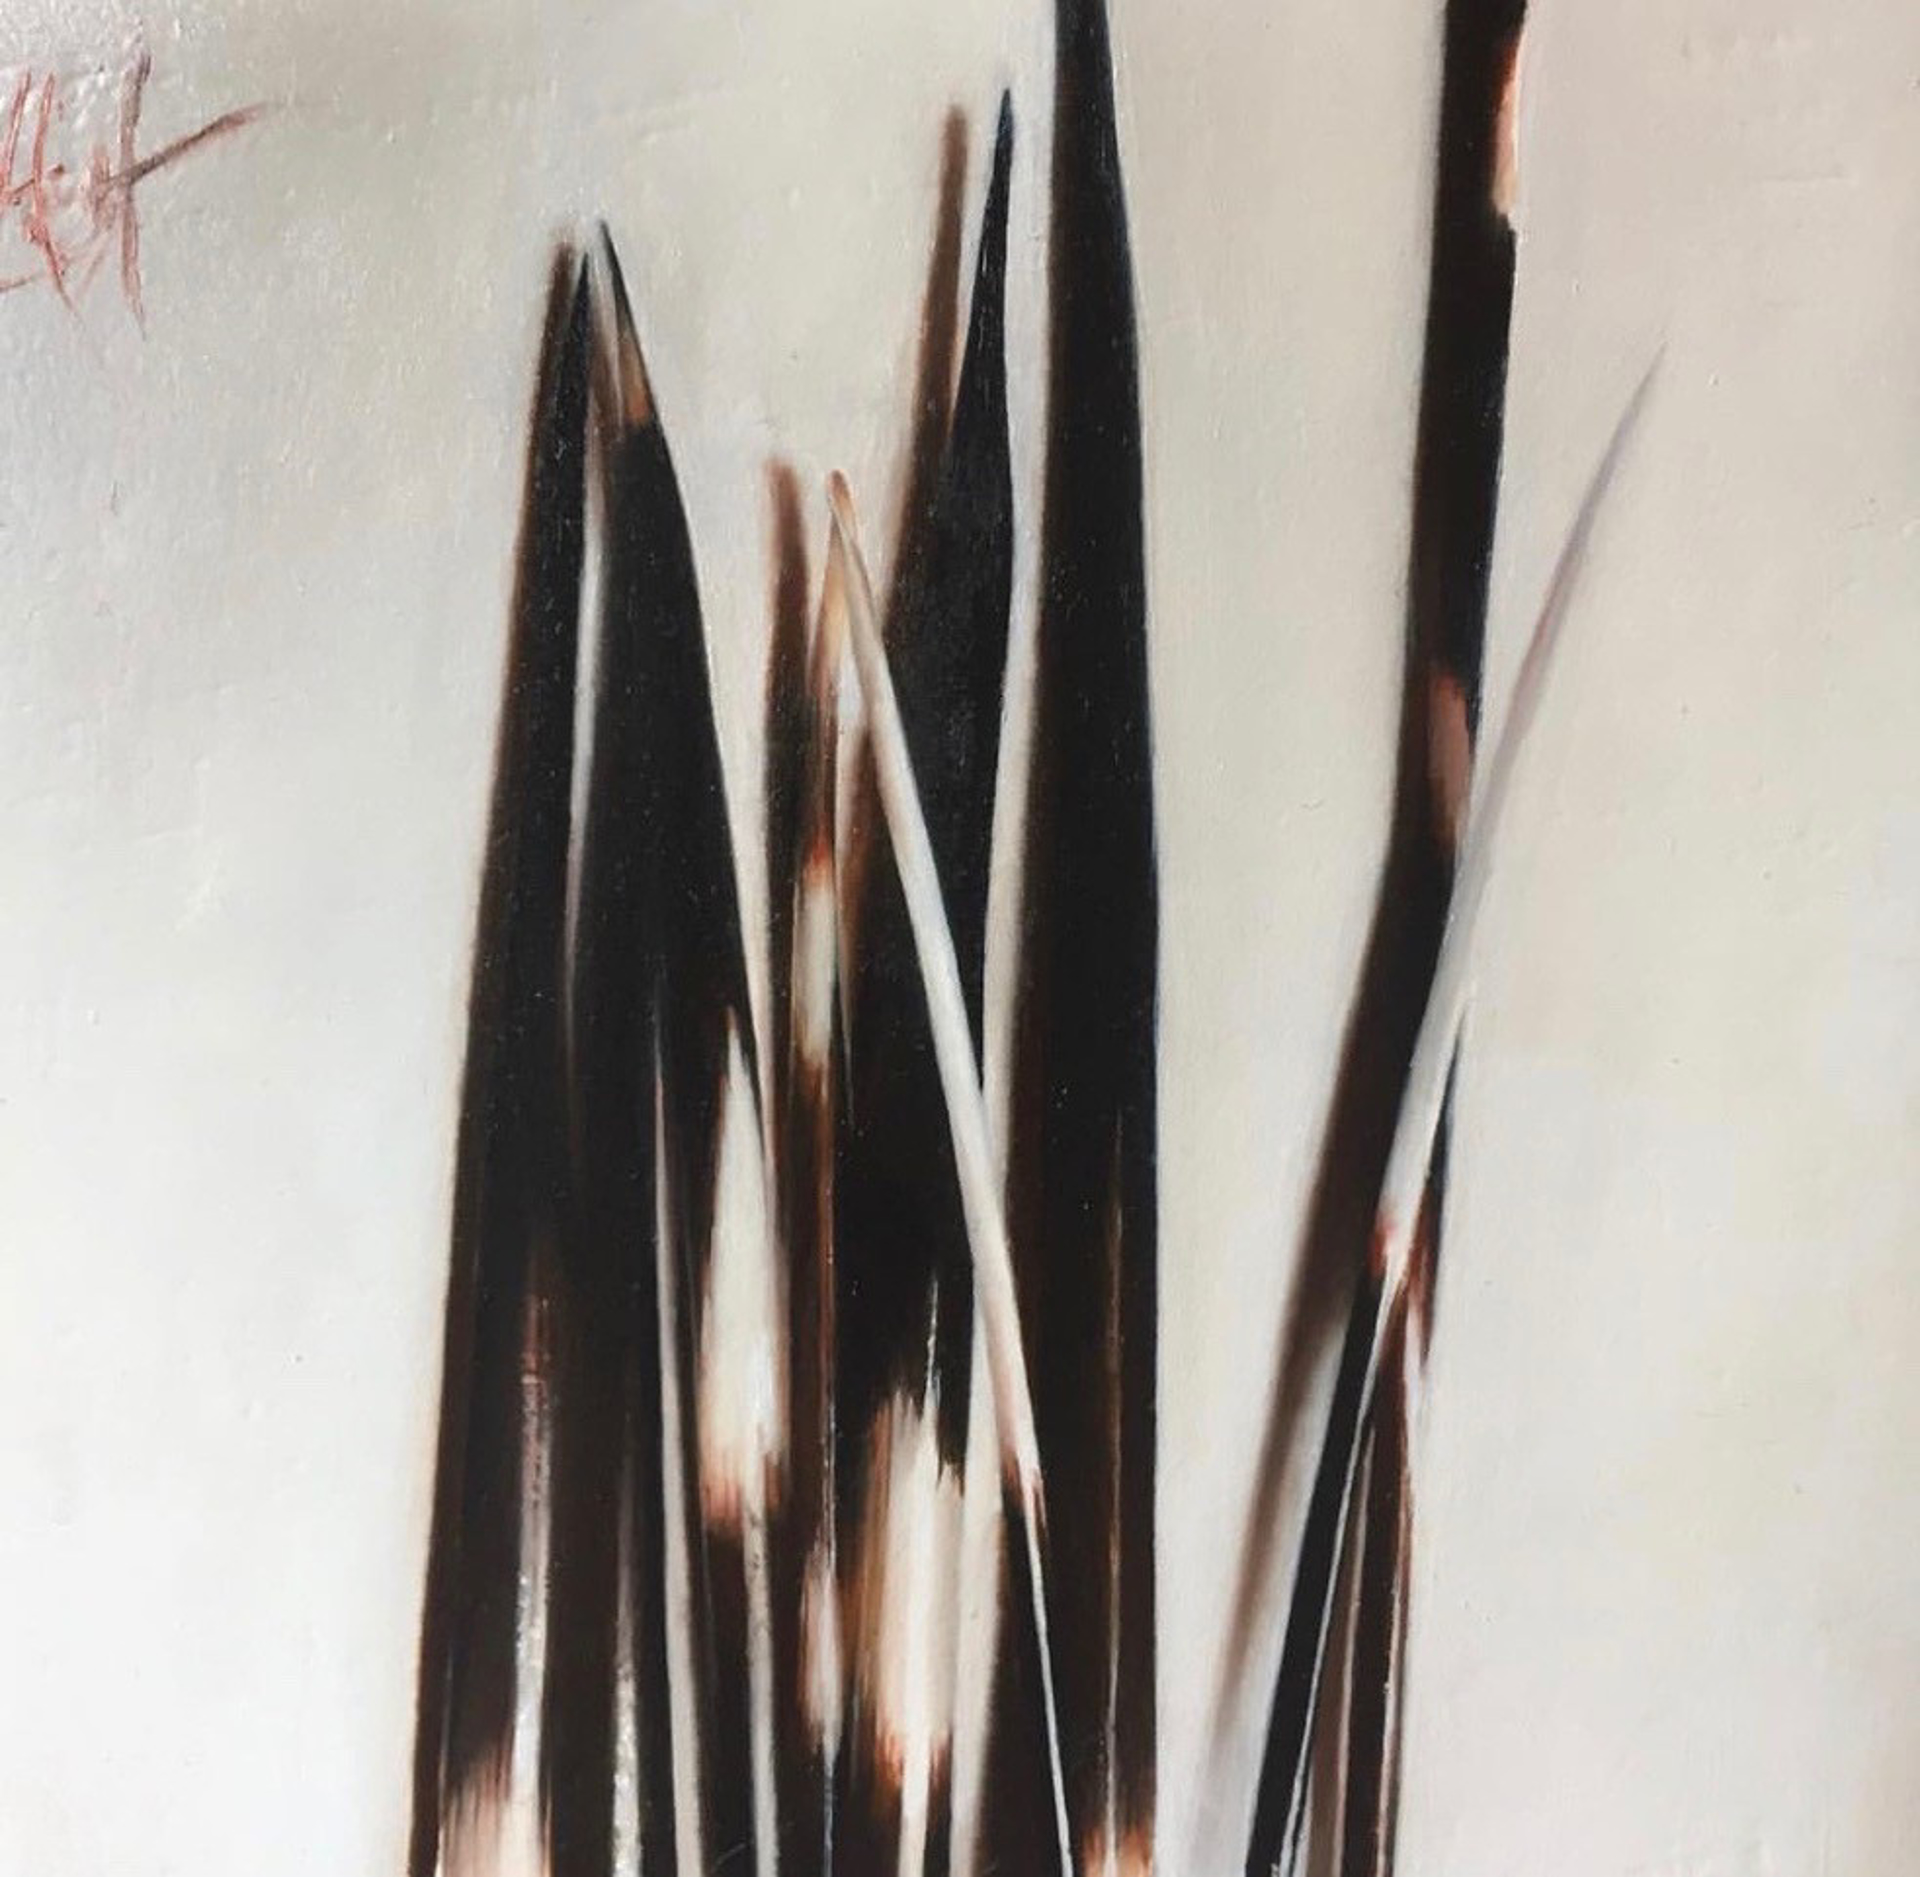 Quills by Emma Hirst